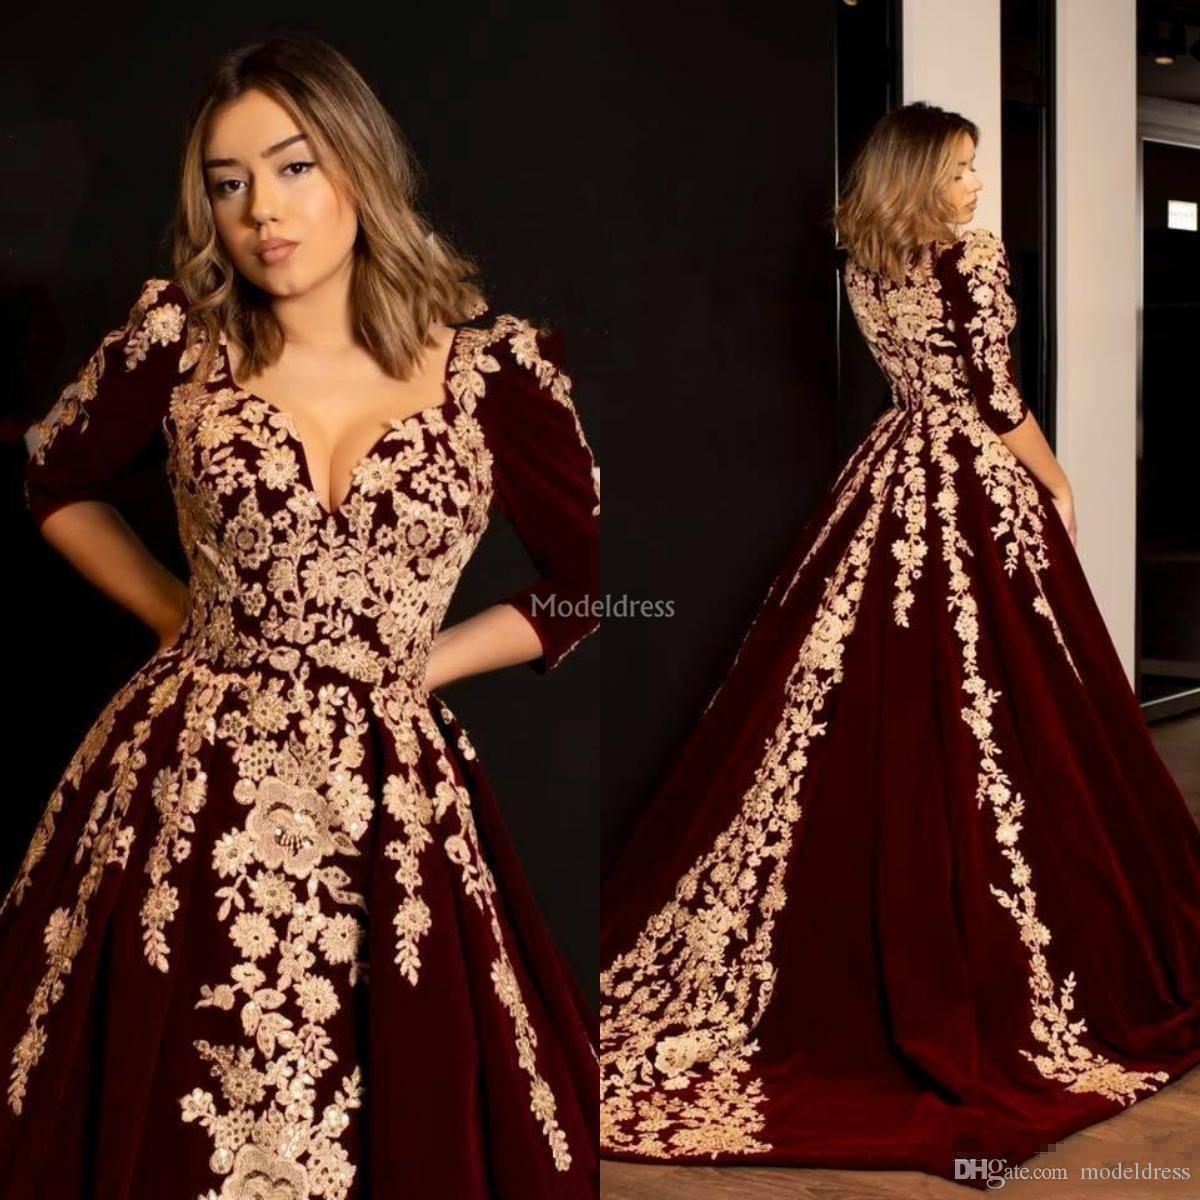 Gorgeous Evening Dresses V-Neck Appliques Half Sleeves A Line Sweep Train Formal Party Prom Gown Elegant Special Occasion Dress Chic Vestido